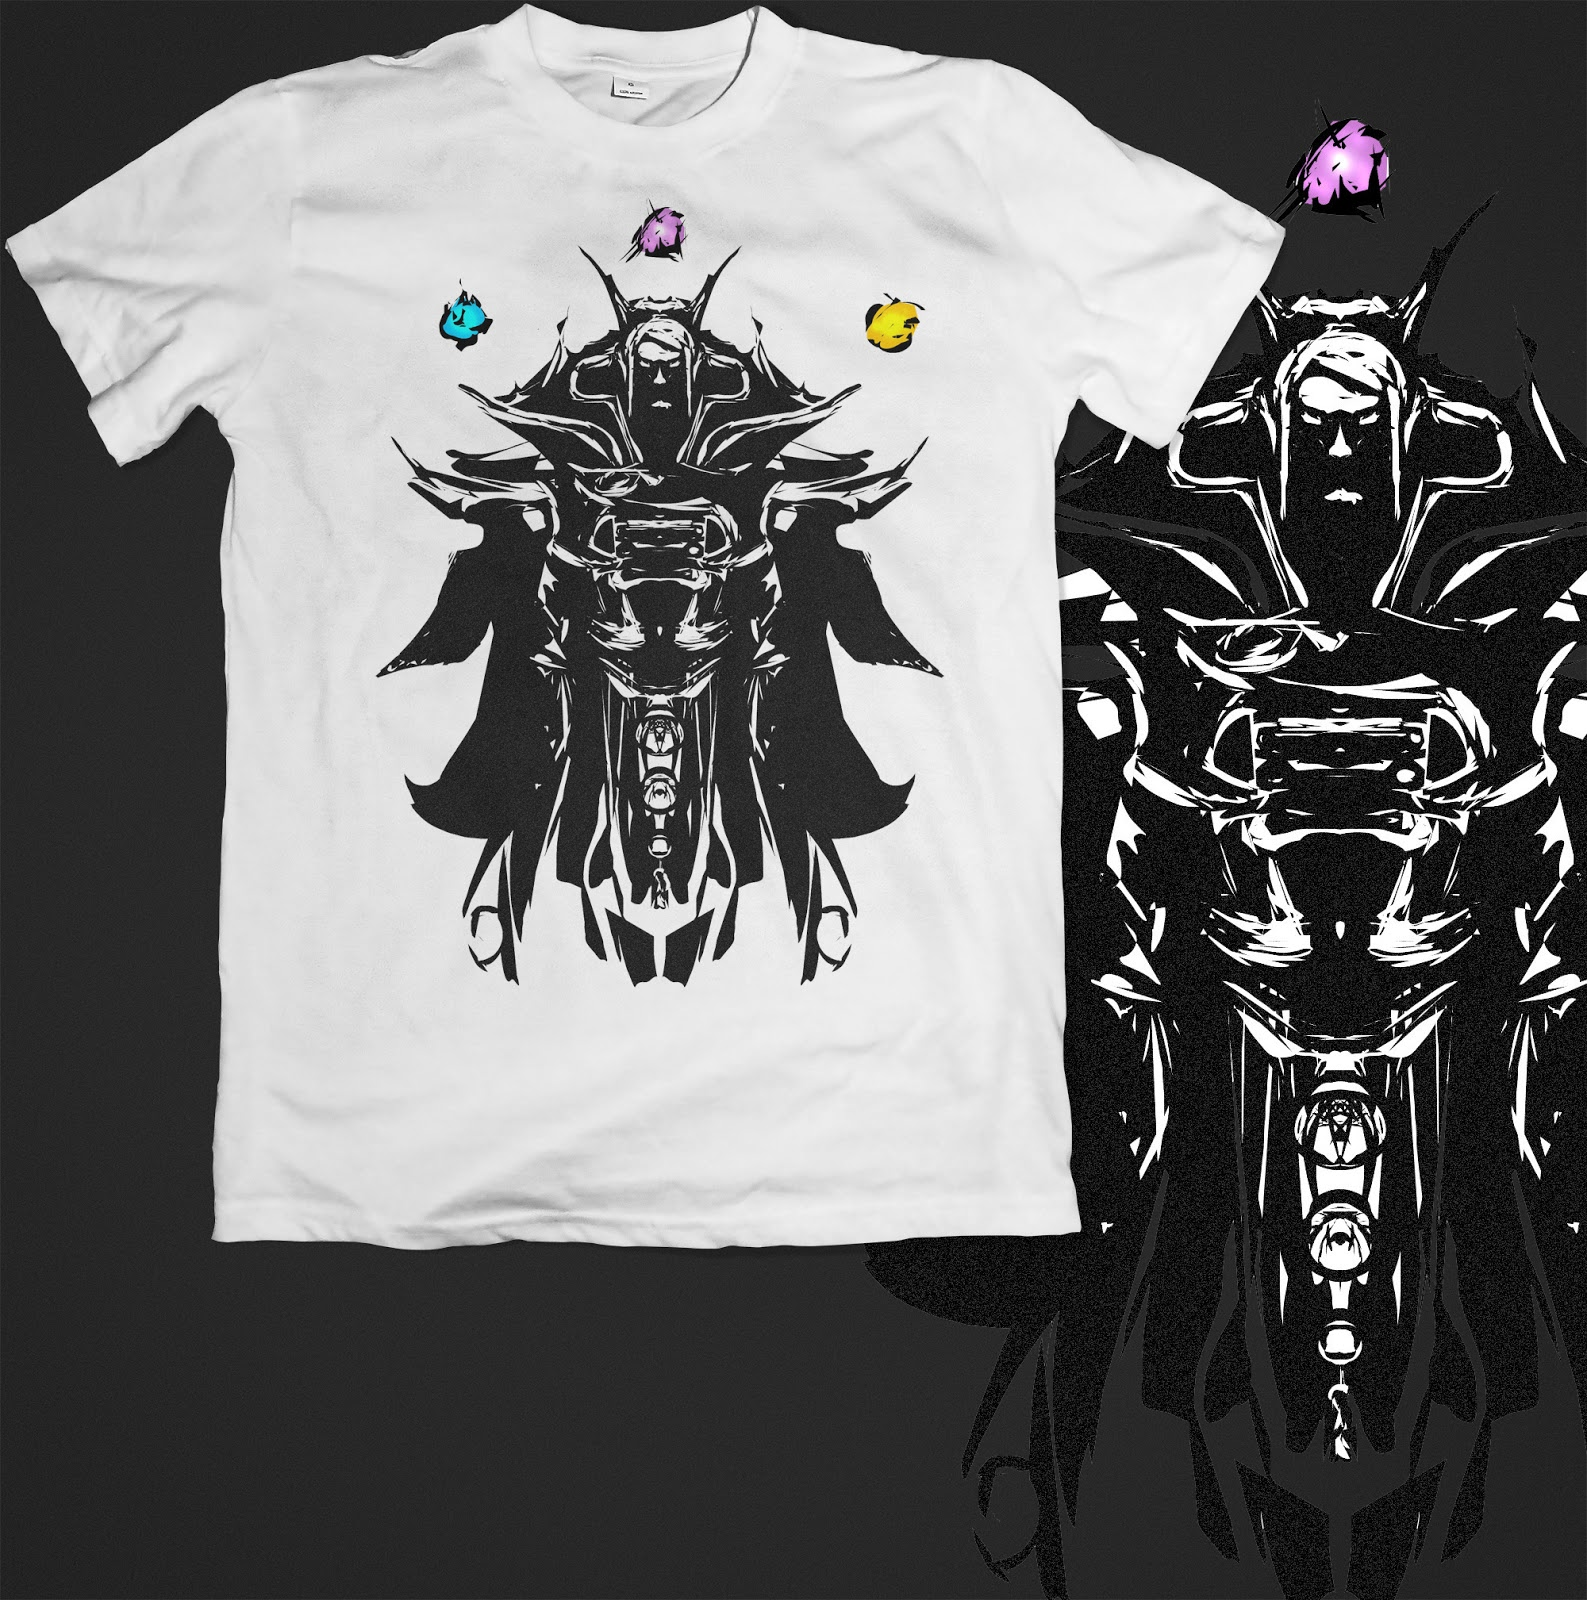 Dota 2 tshirt design - Top 10 Dota T Shirt Designs